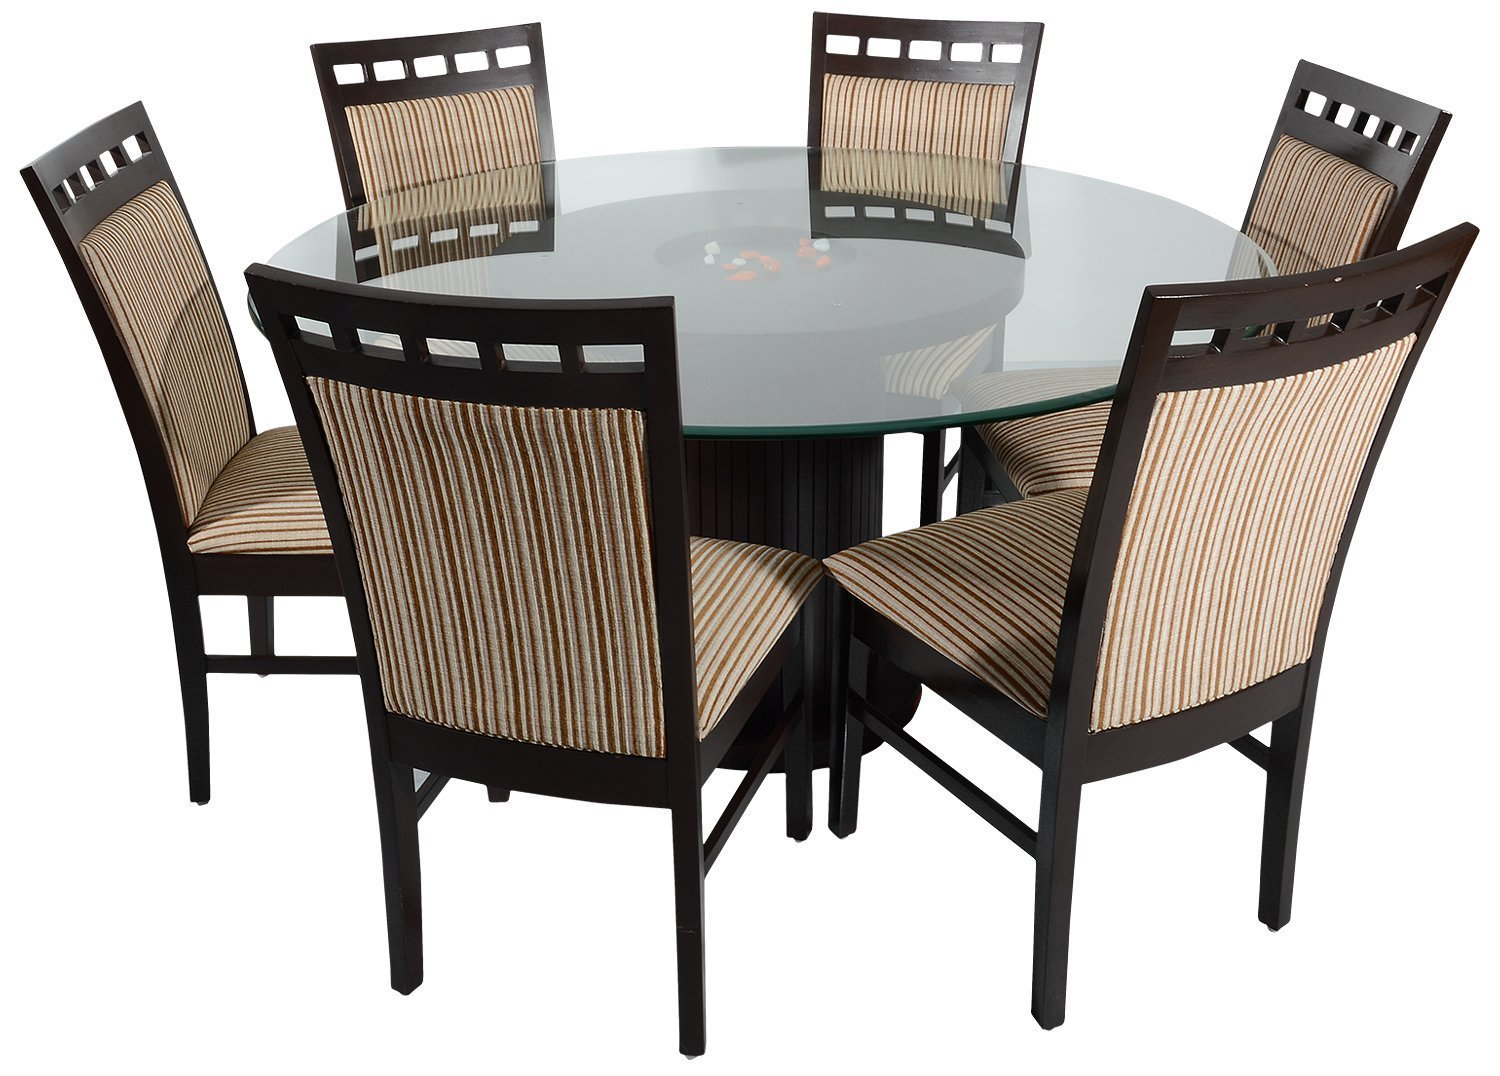 rawat dtn17dcn17 six seater dining table muticolour rawat furniture. Black Bedroom Furniture Sets. Home Design Ideas